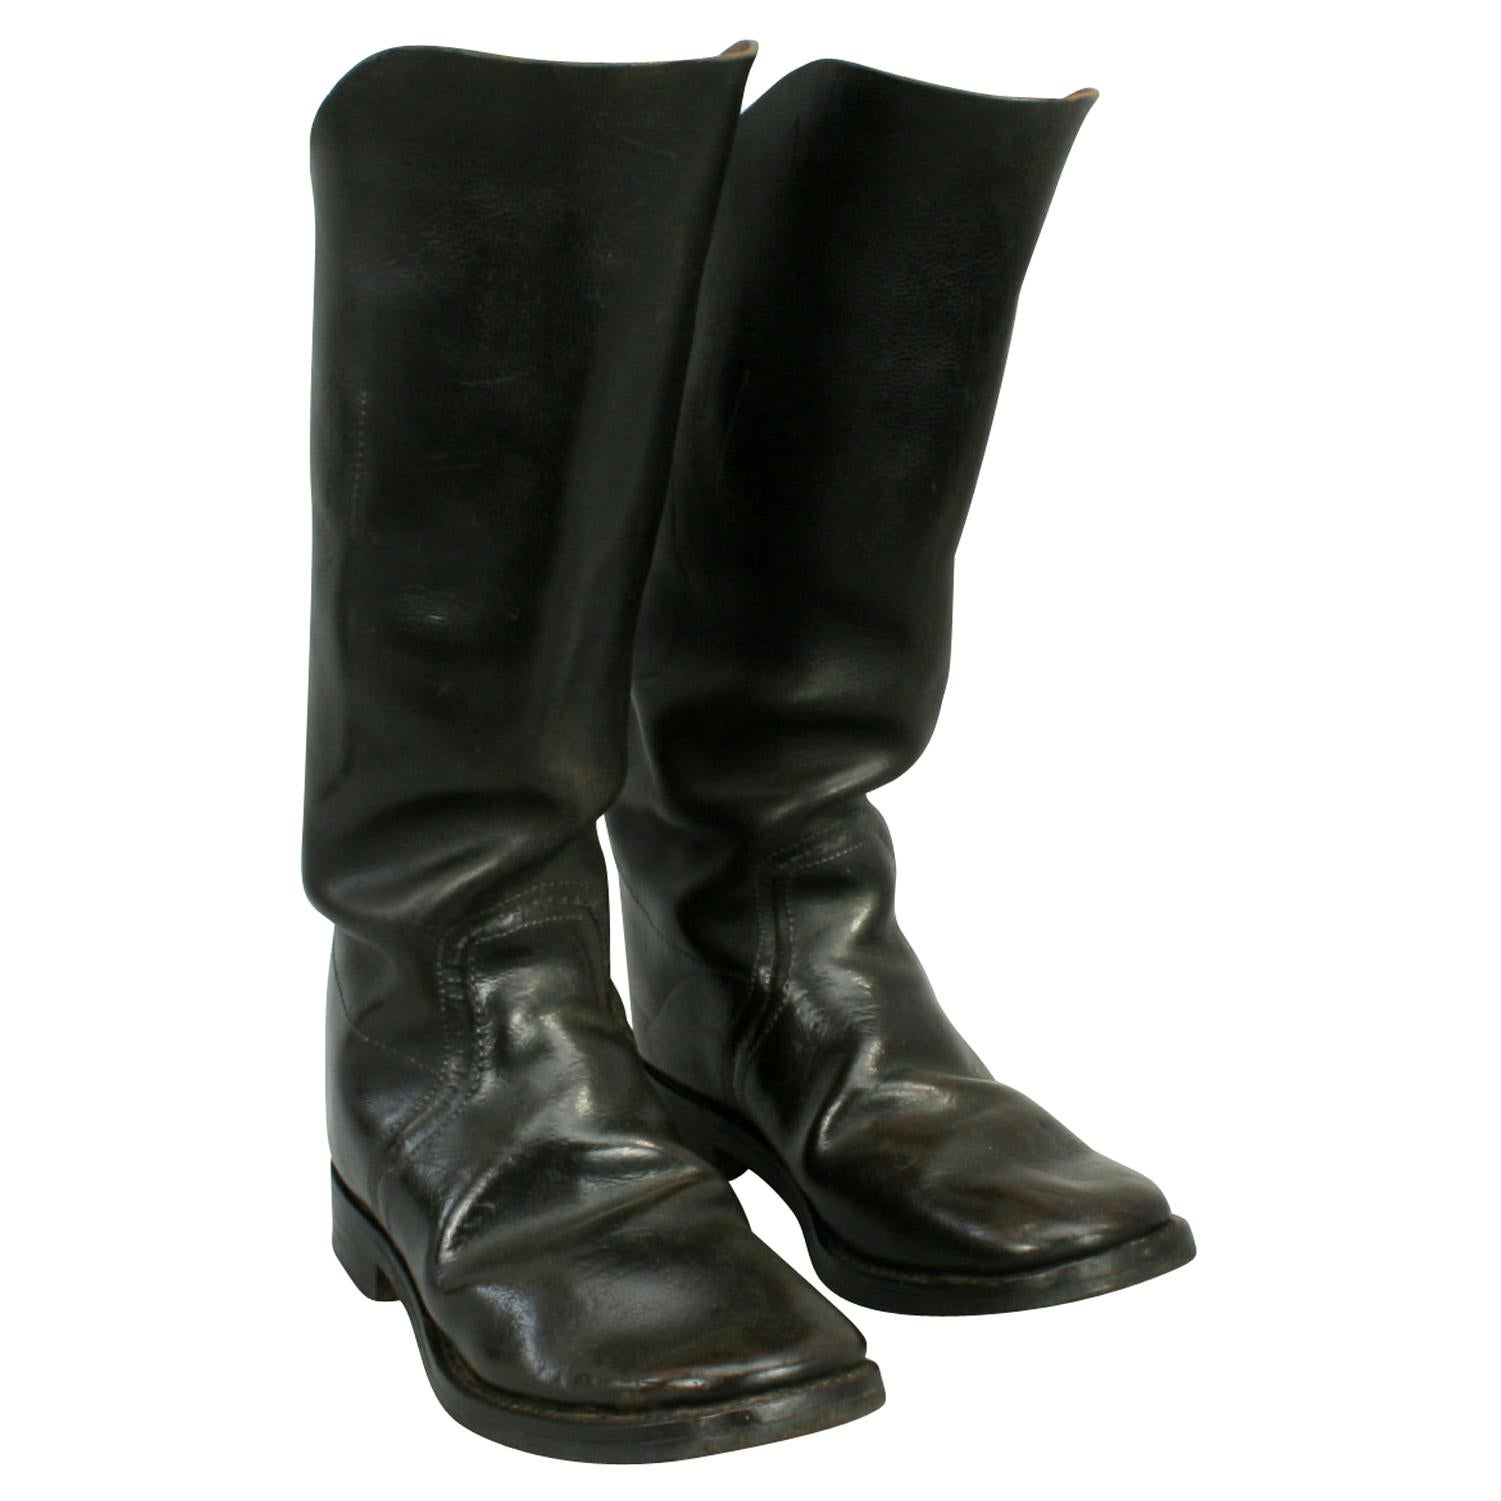 Antique Leather Army Boots, Artillery